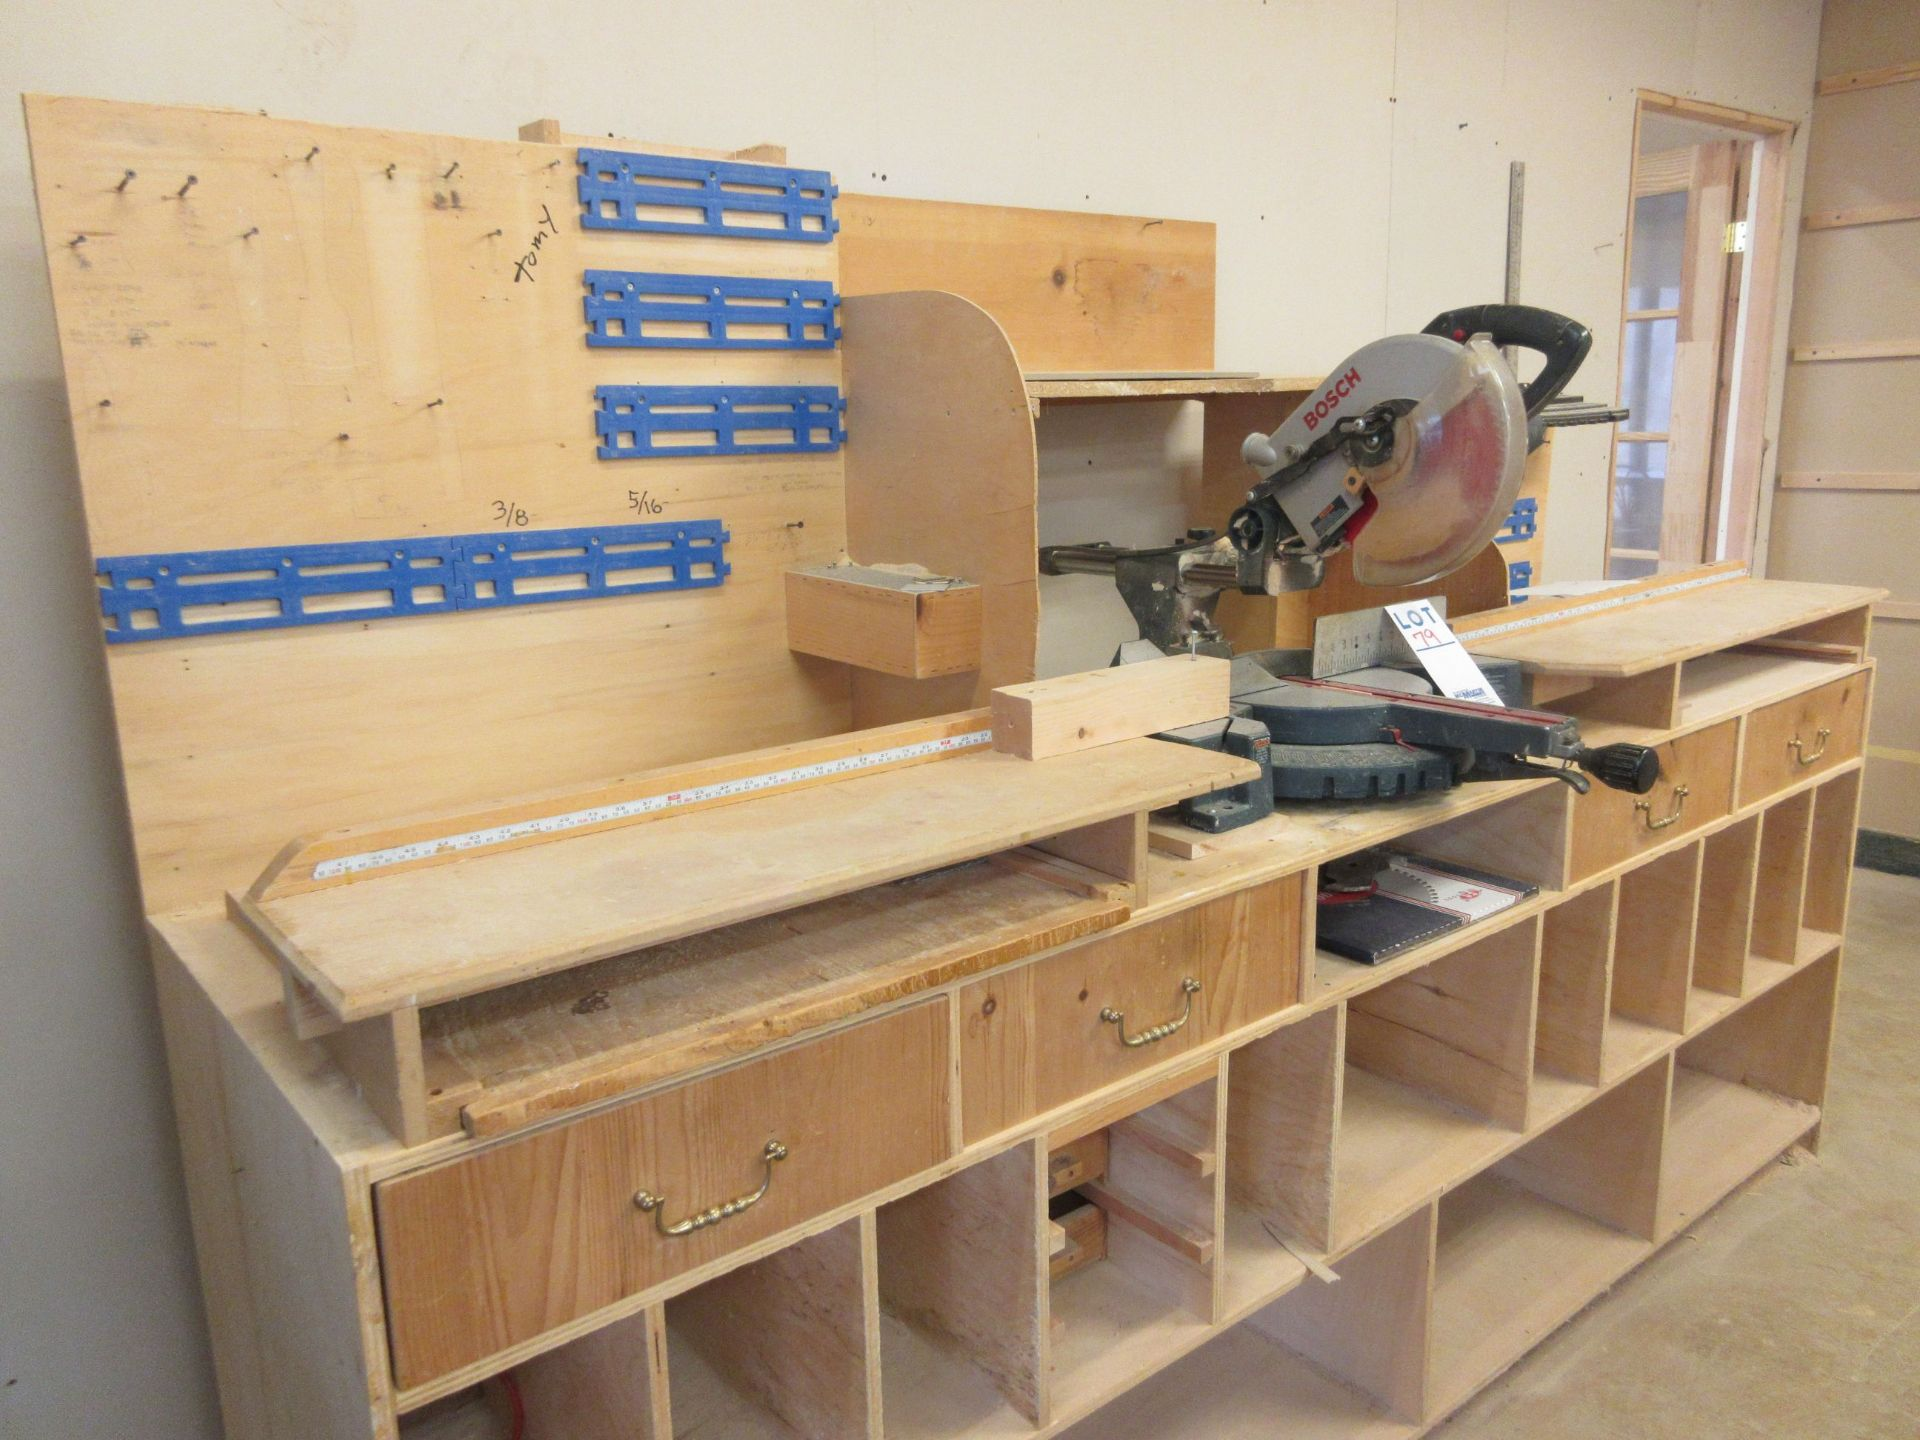 BOSCH Miter saw, Mod: 3915 c/w work table - Image 3 of 4